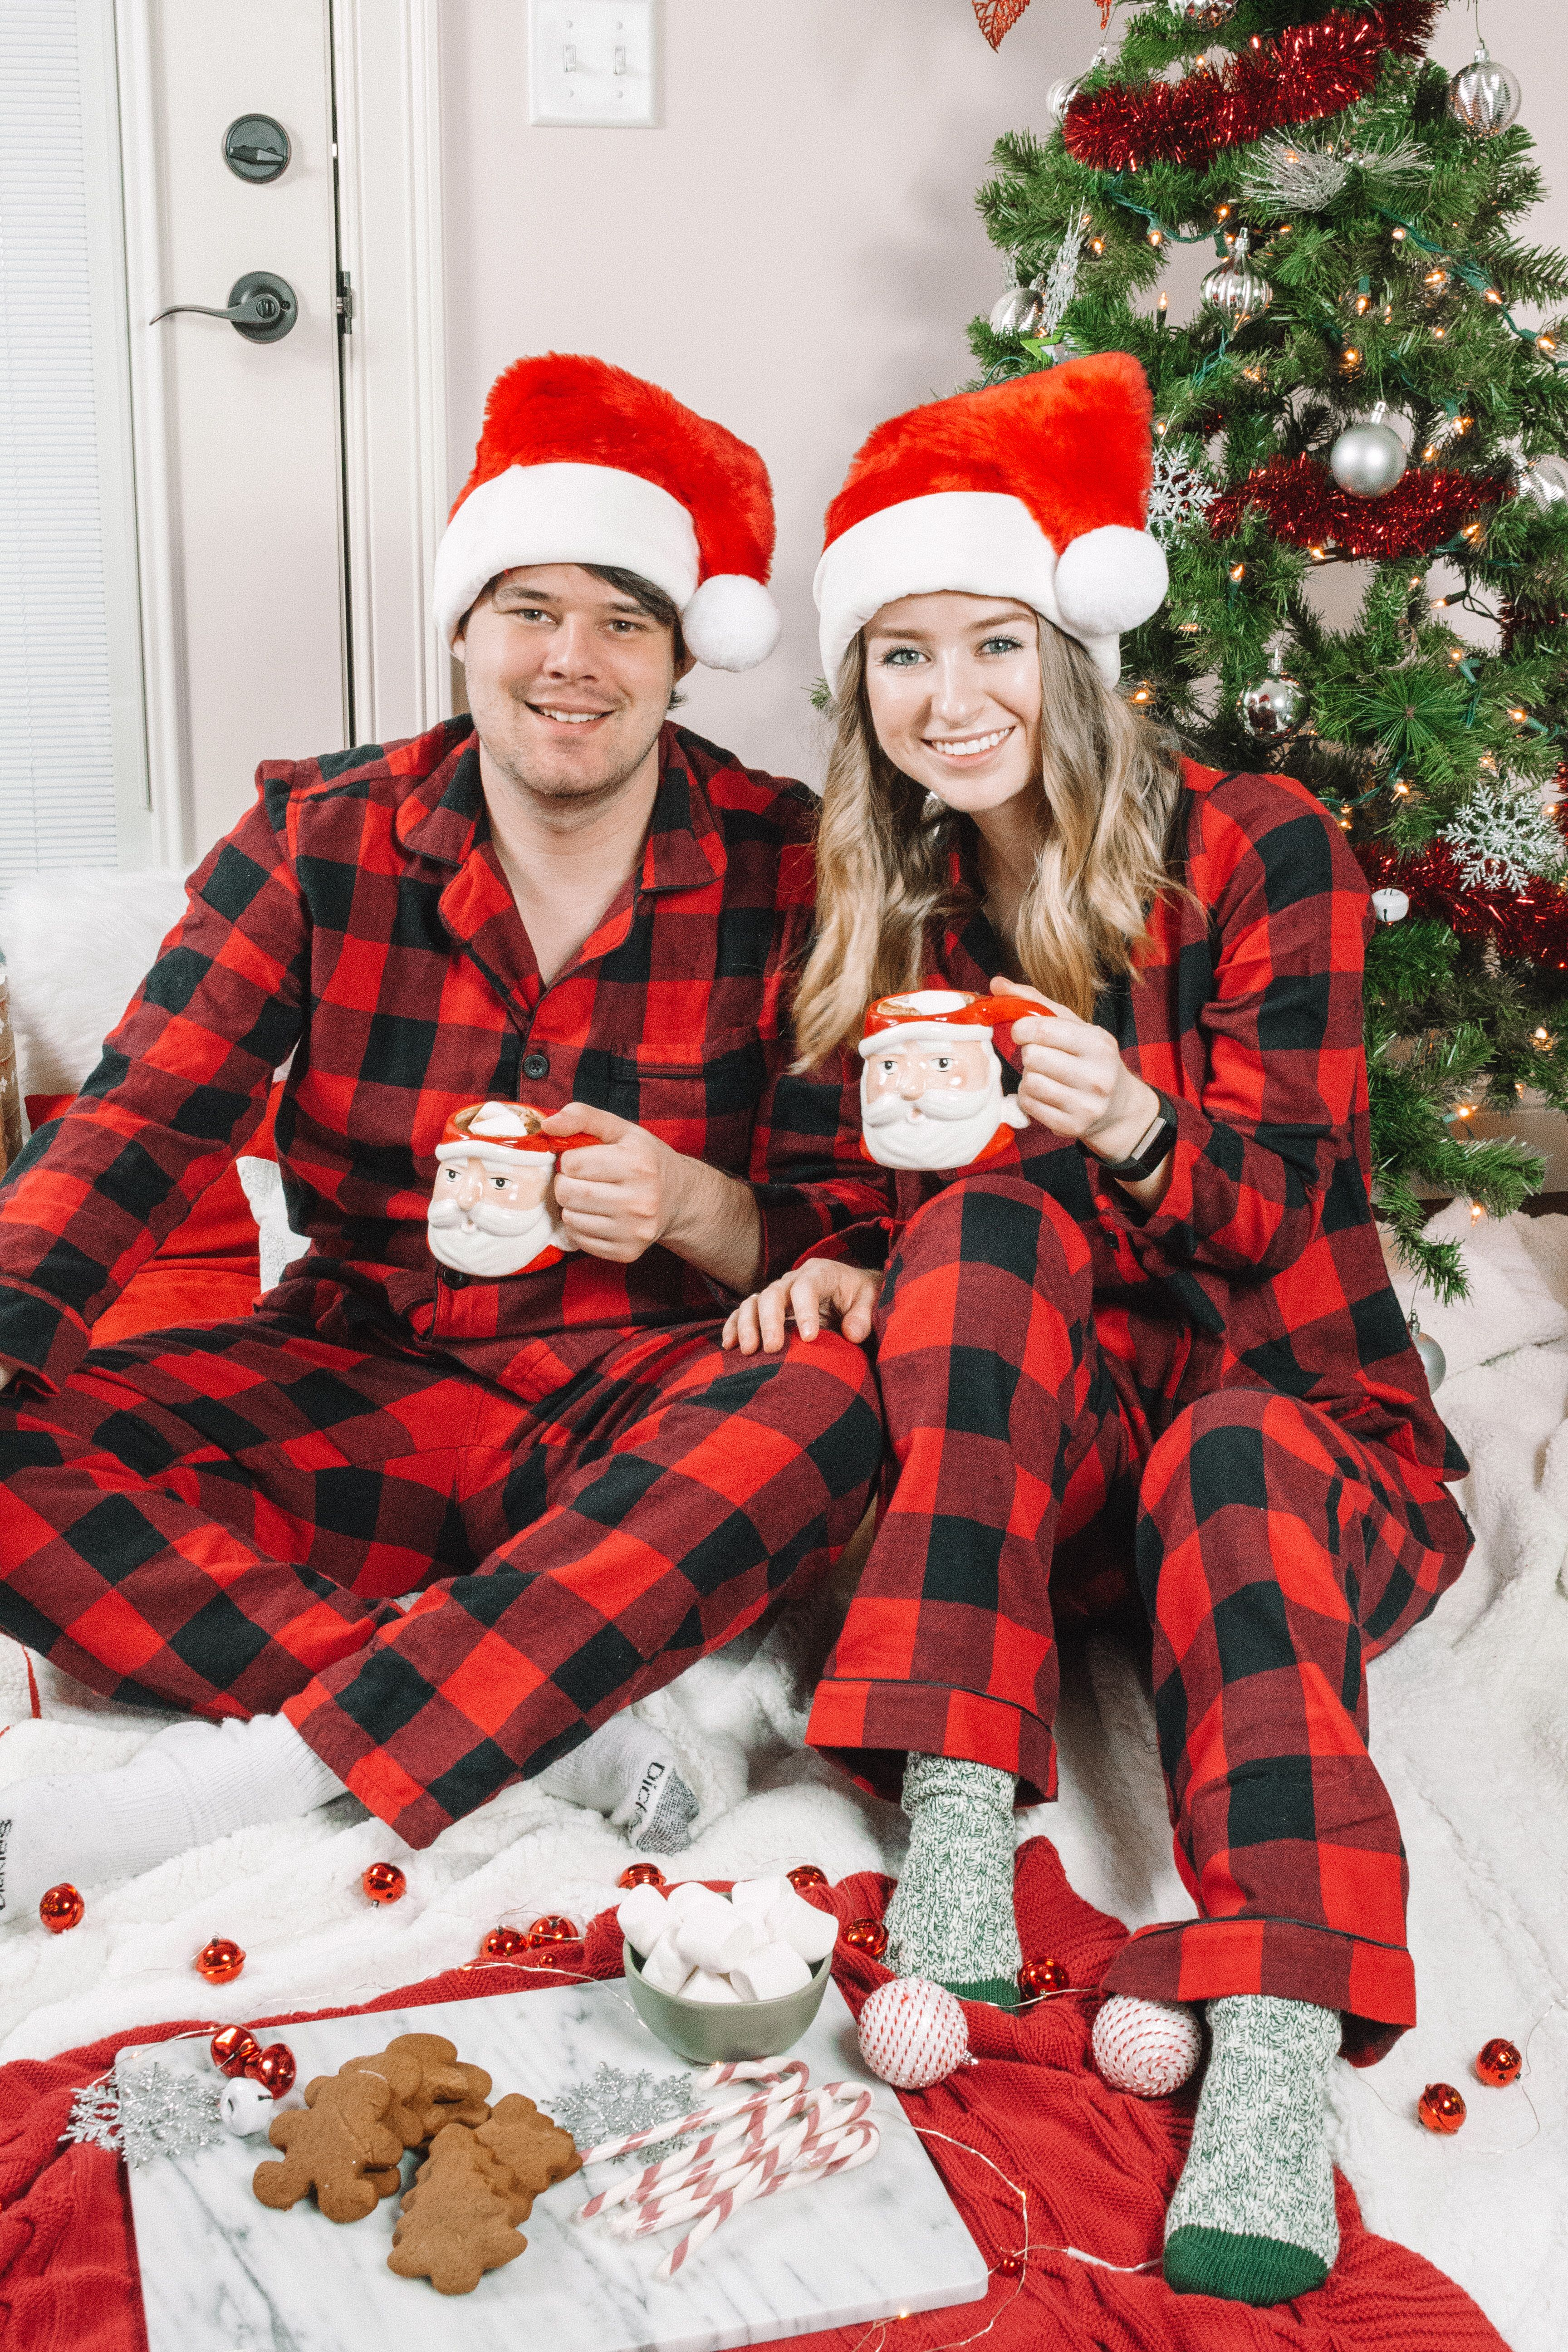 Happy Holidays! I am so in love with these matching